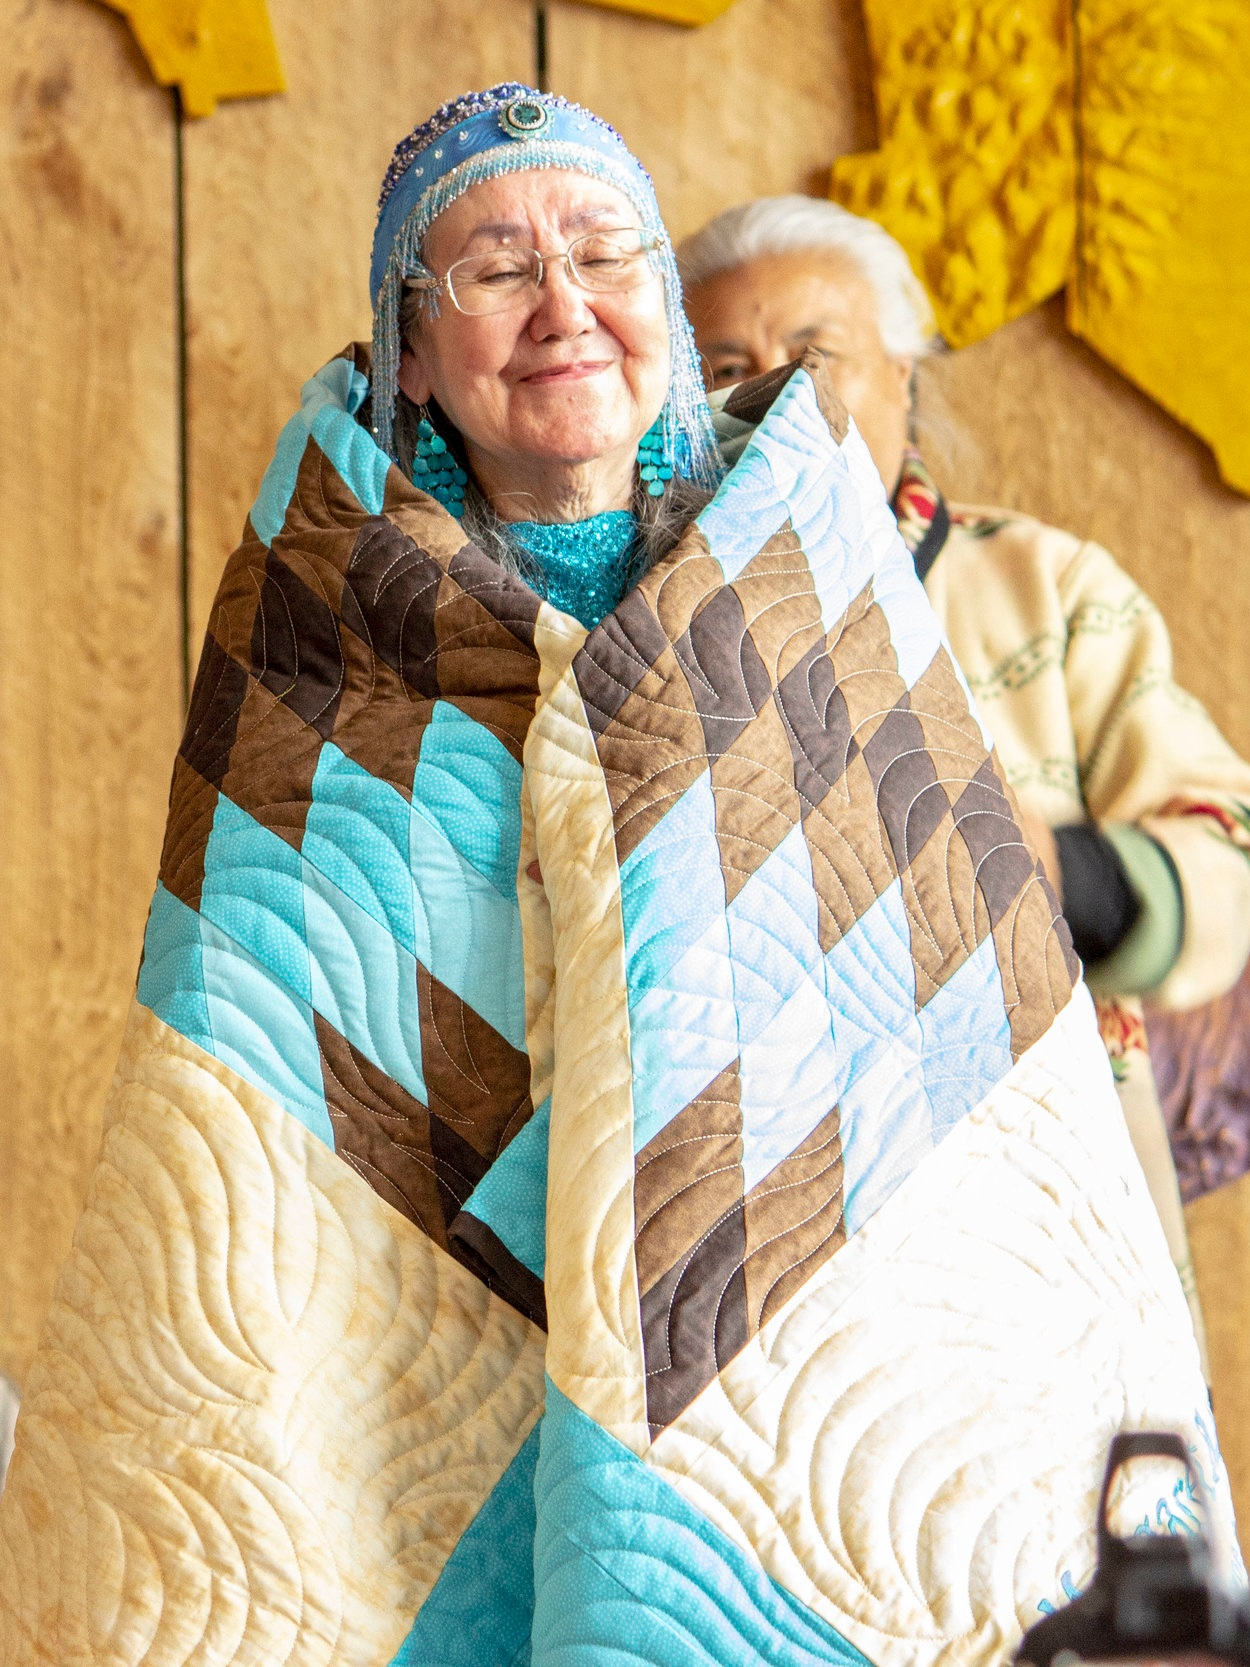 Margaret wrapped in her star quilt from FPF. Photo by Bryan Parker (Muscogee Creek/Mississippi Choctaw).